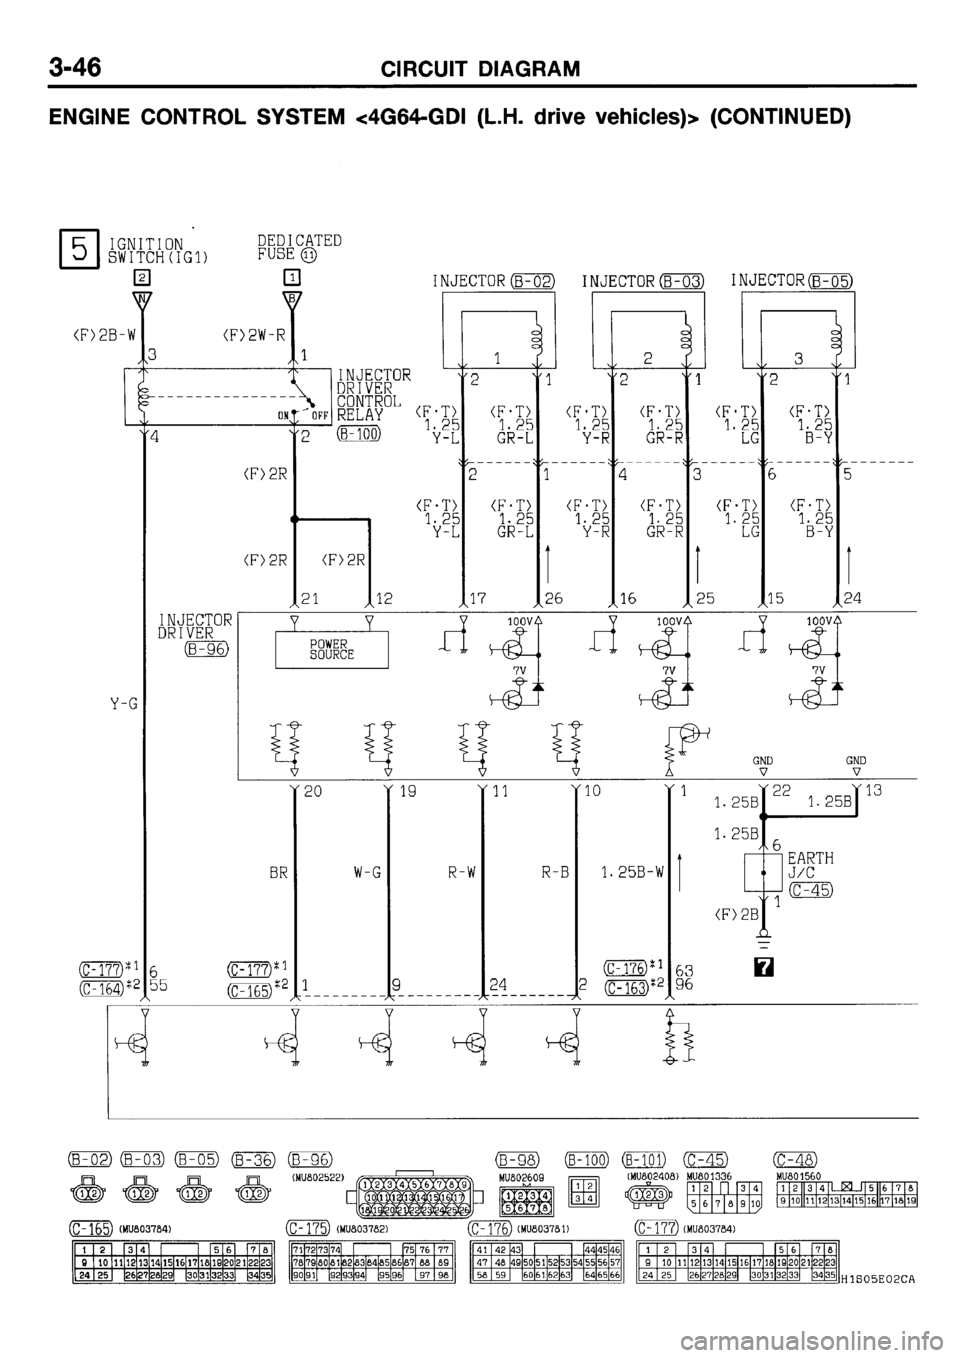 Mitsubishi Galant 2001 8 G Electrical Wiring Diagram Workshop Manual 404 Pages Page 110